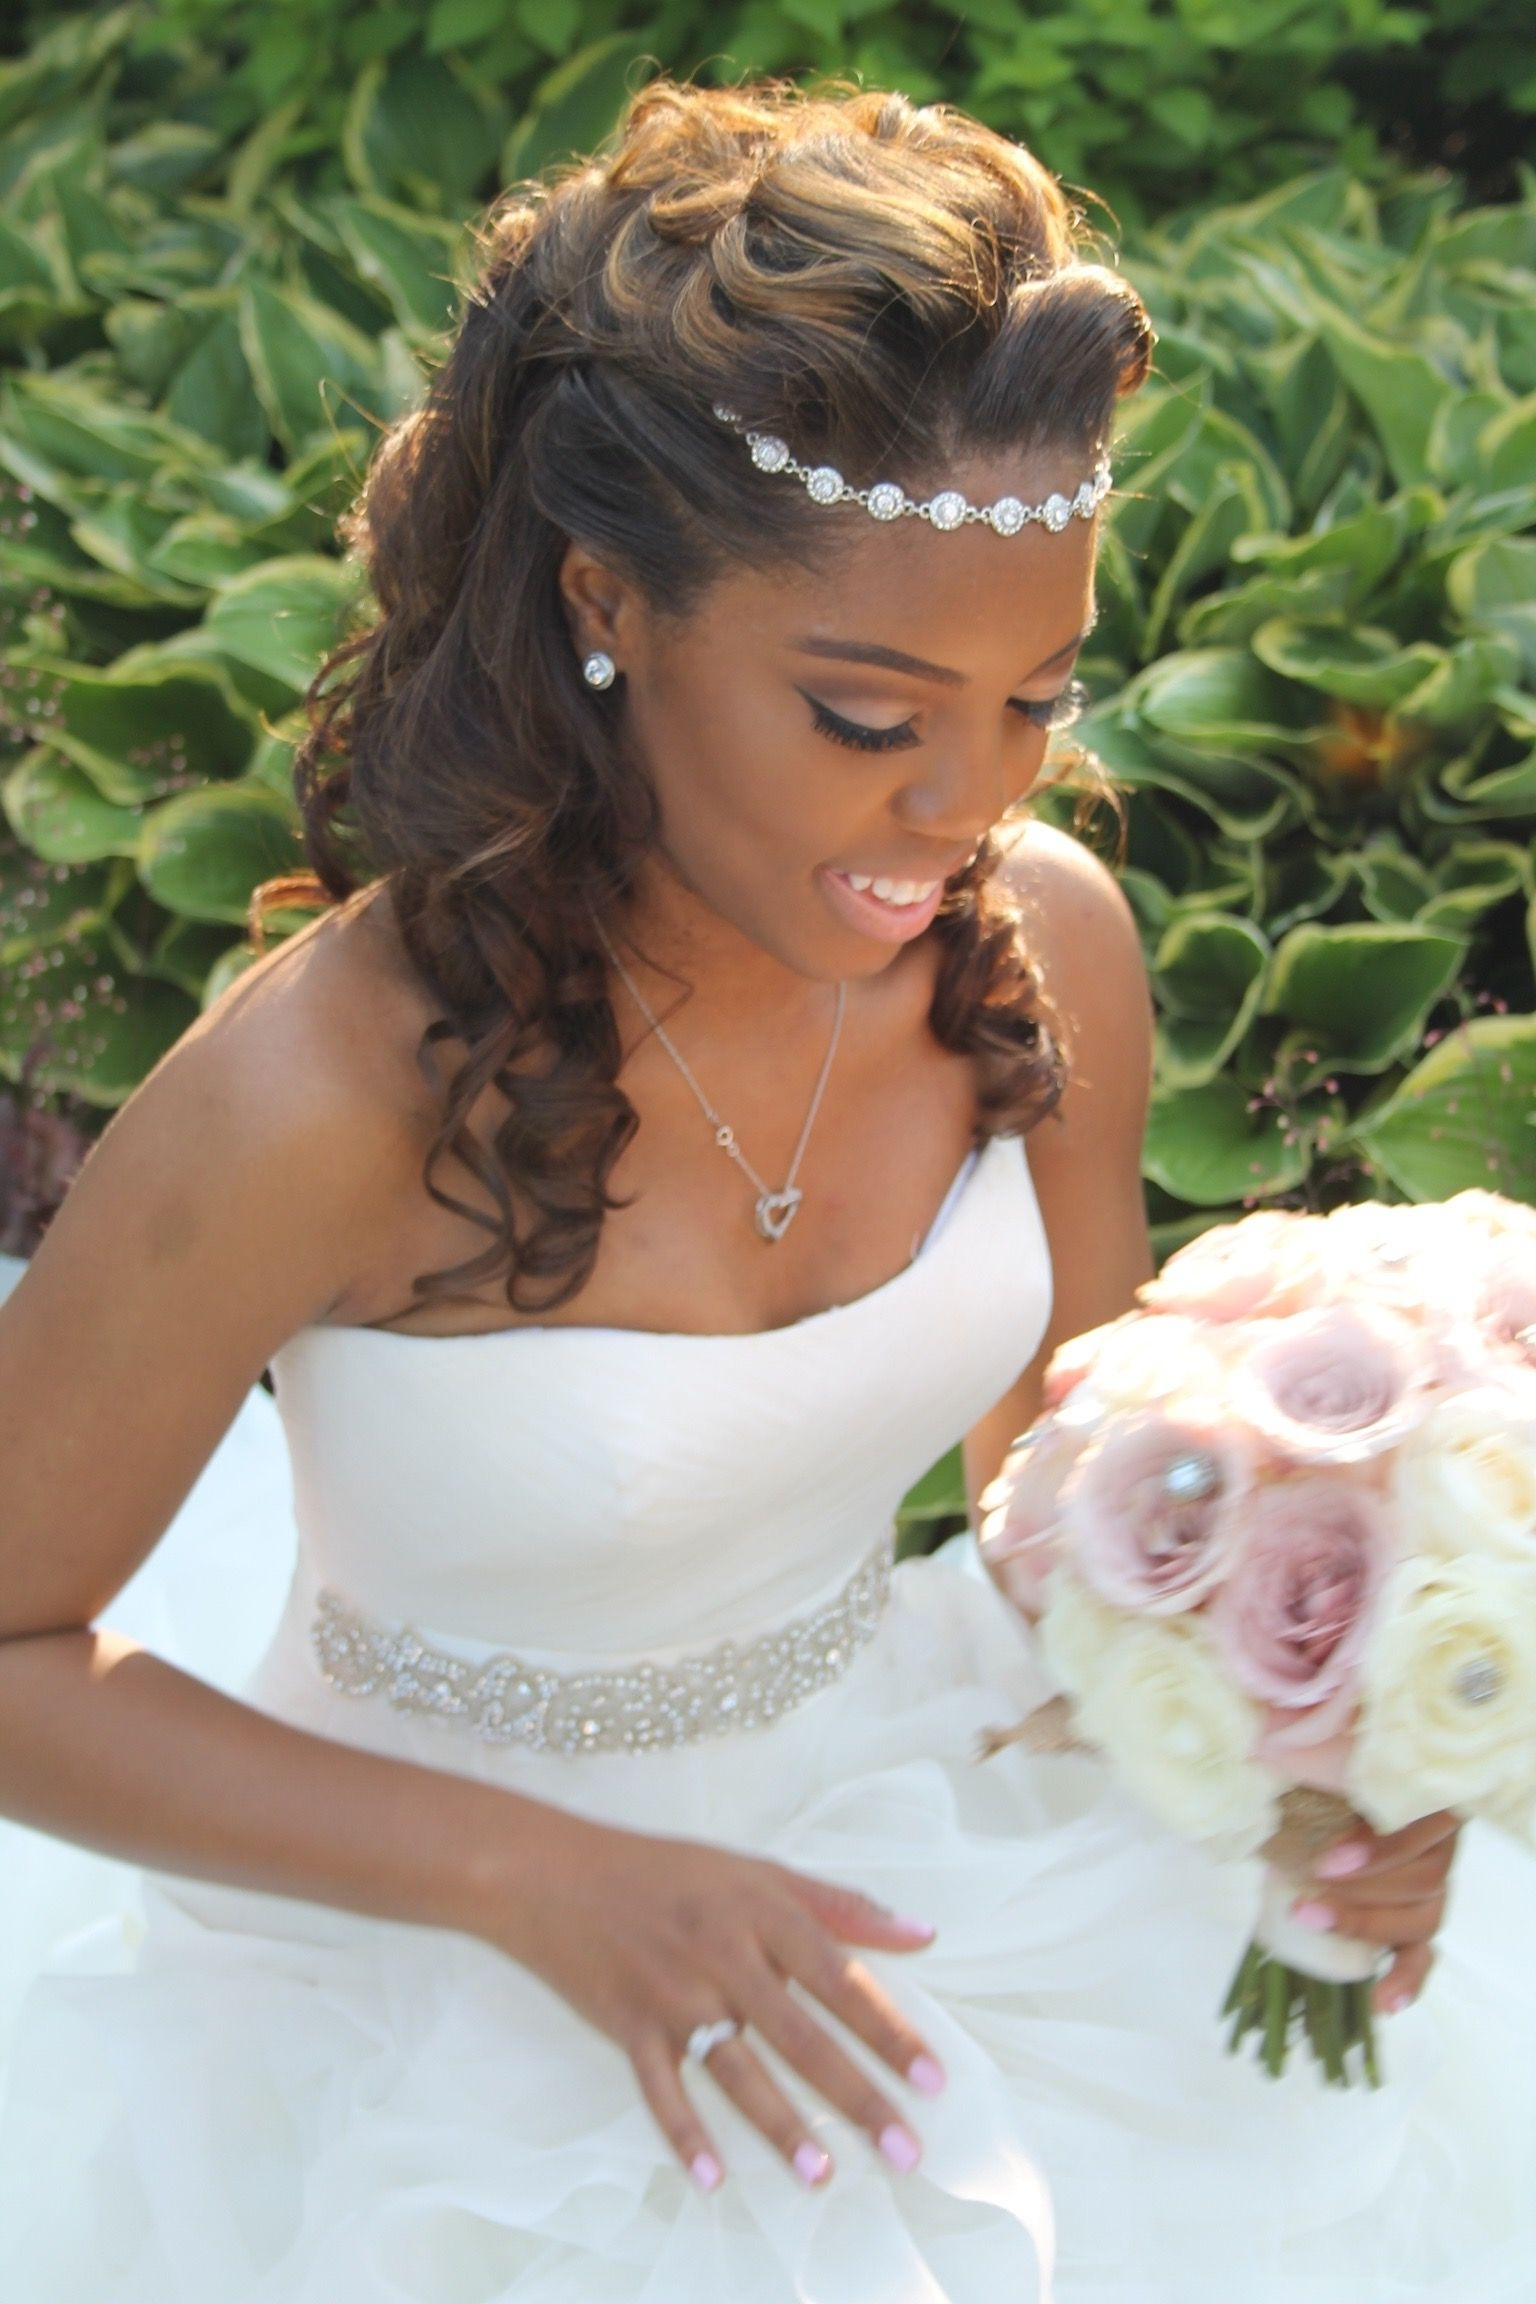 Elegant Bridal Up Do Hairstyle! Halo Hair Piece! No Vail Wedding Inside Black Bride Updo Hairstyles (Gallery 2 of 15)